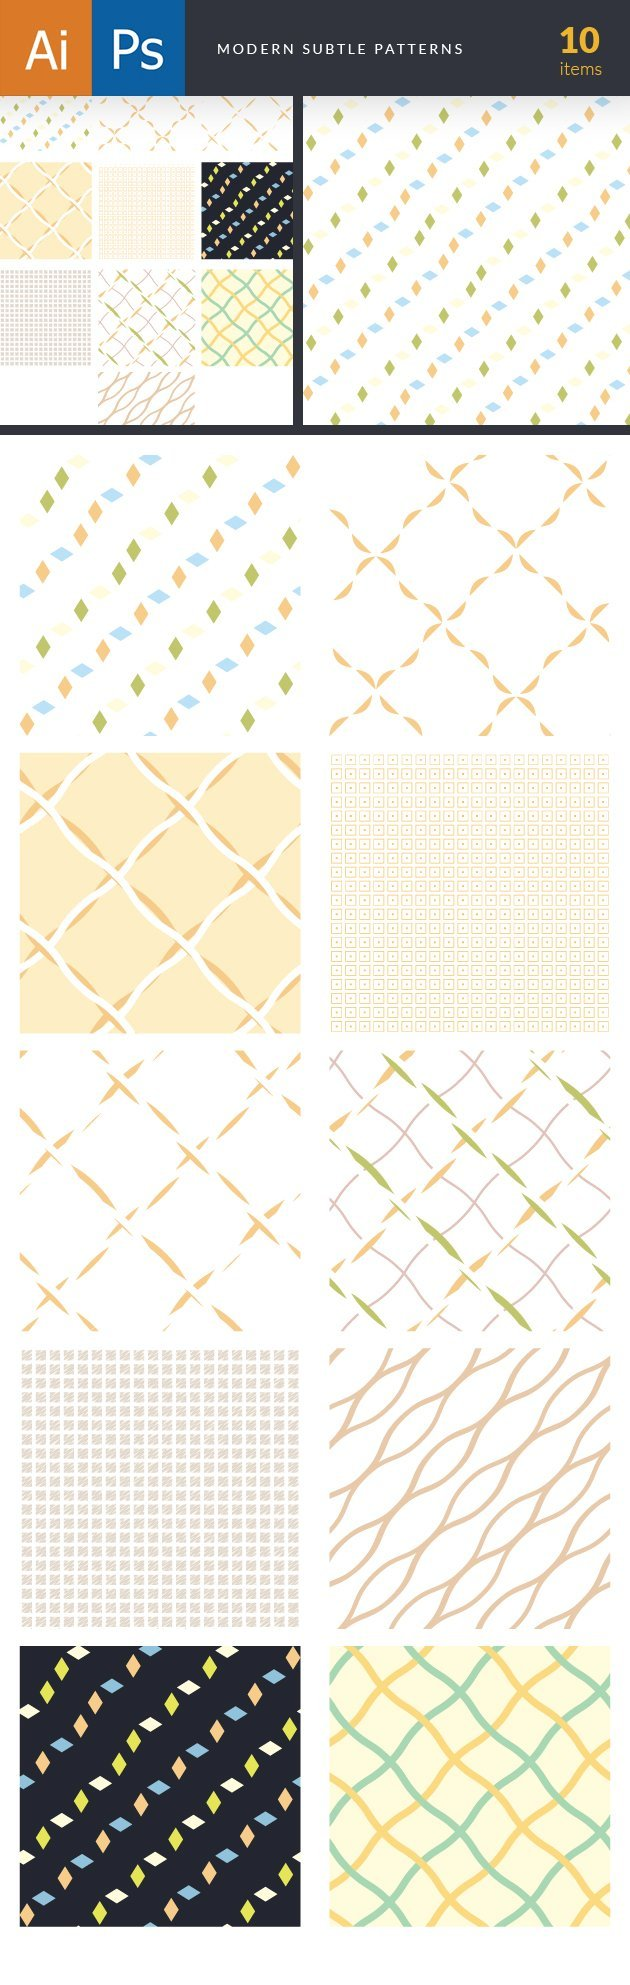 designtnt-patterns-modern-subtle-large